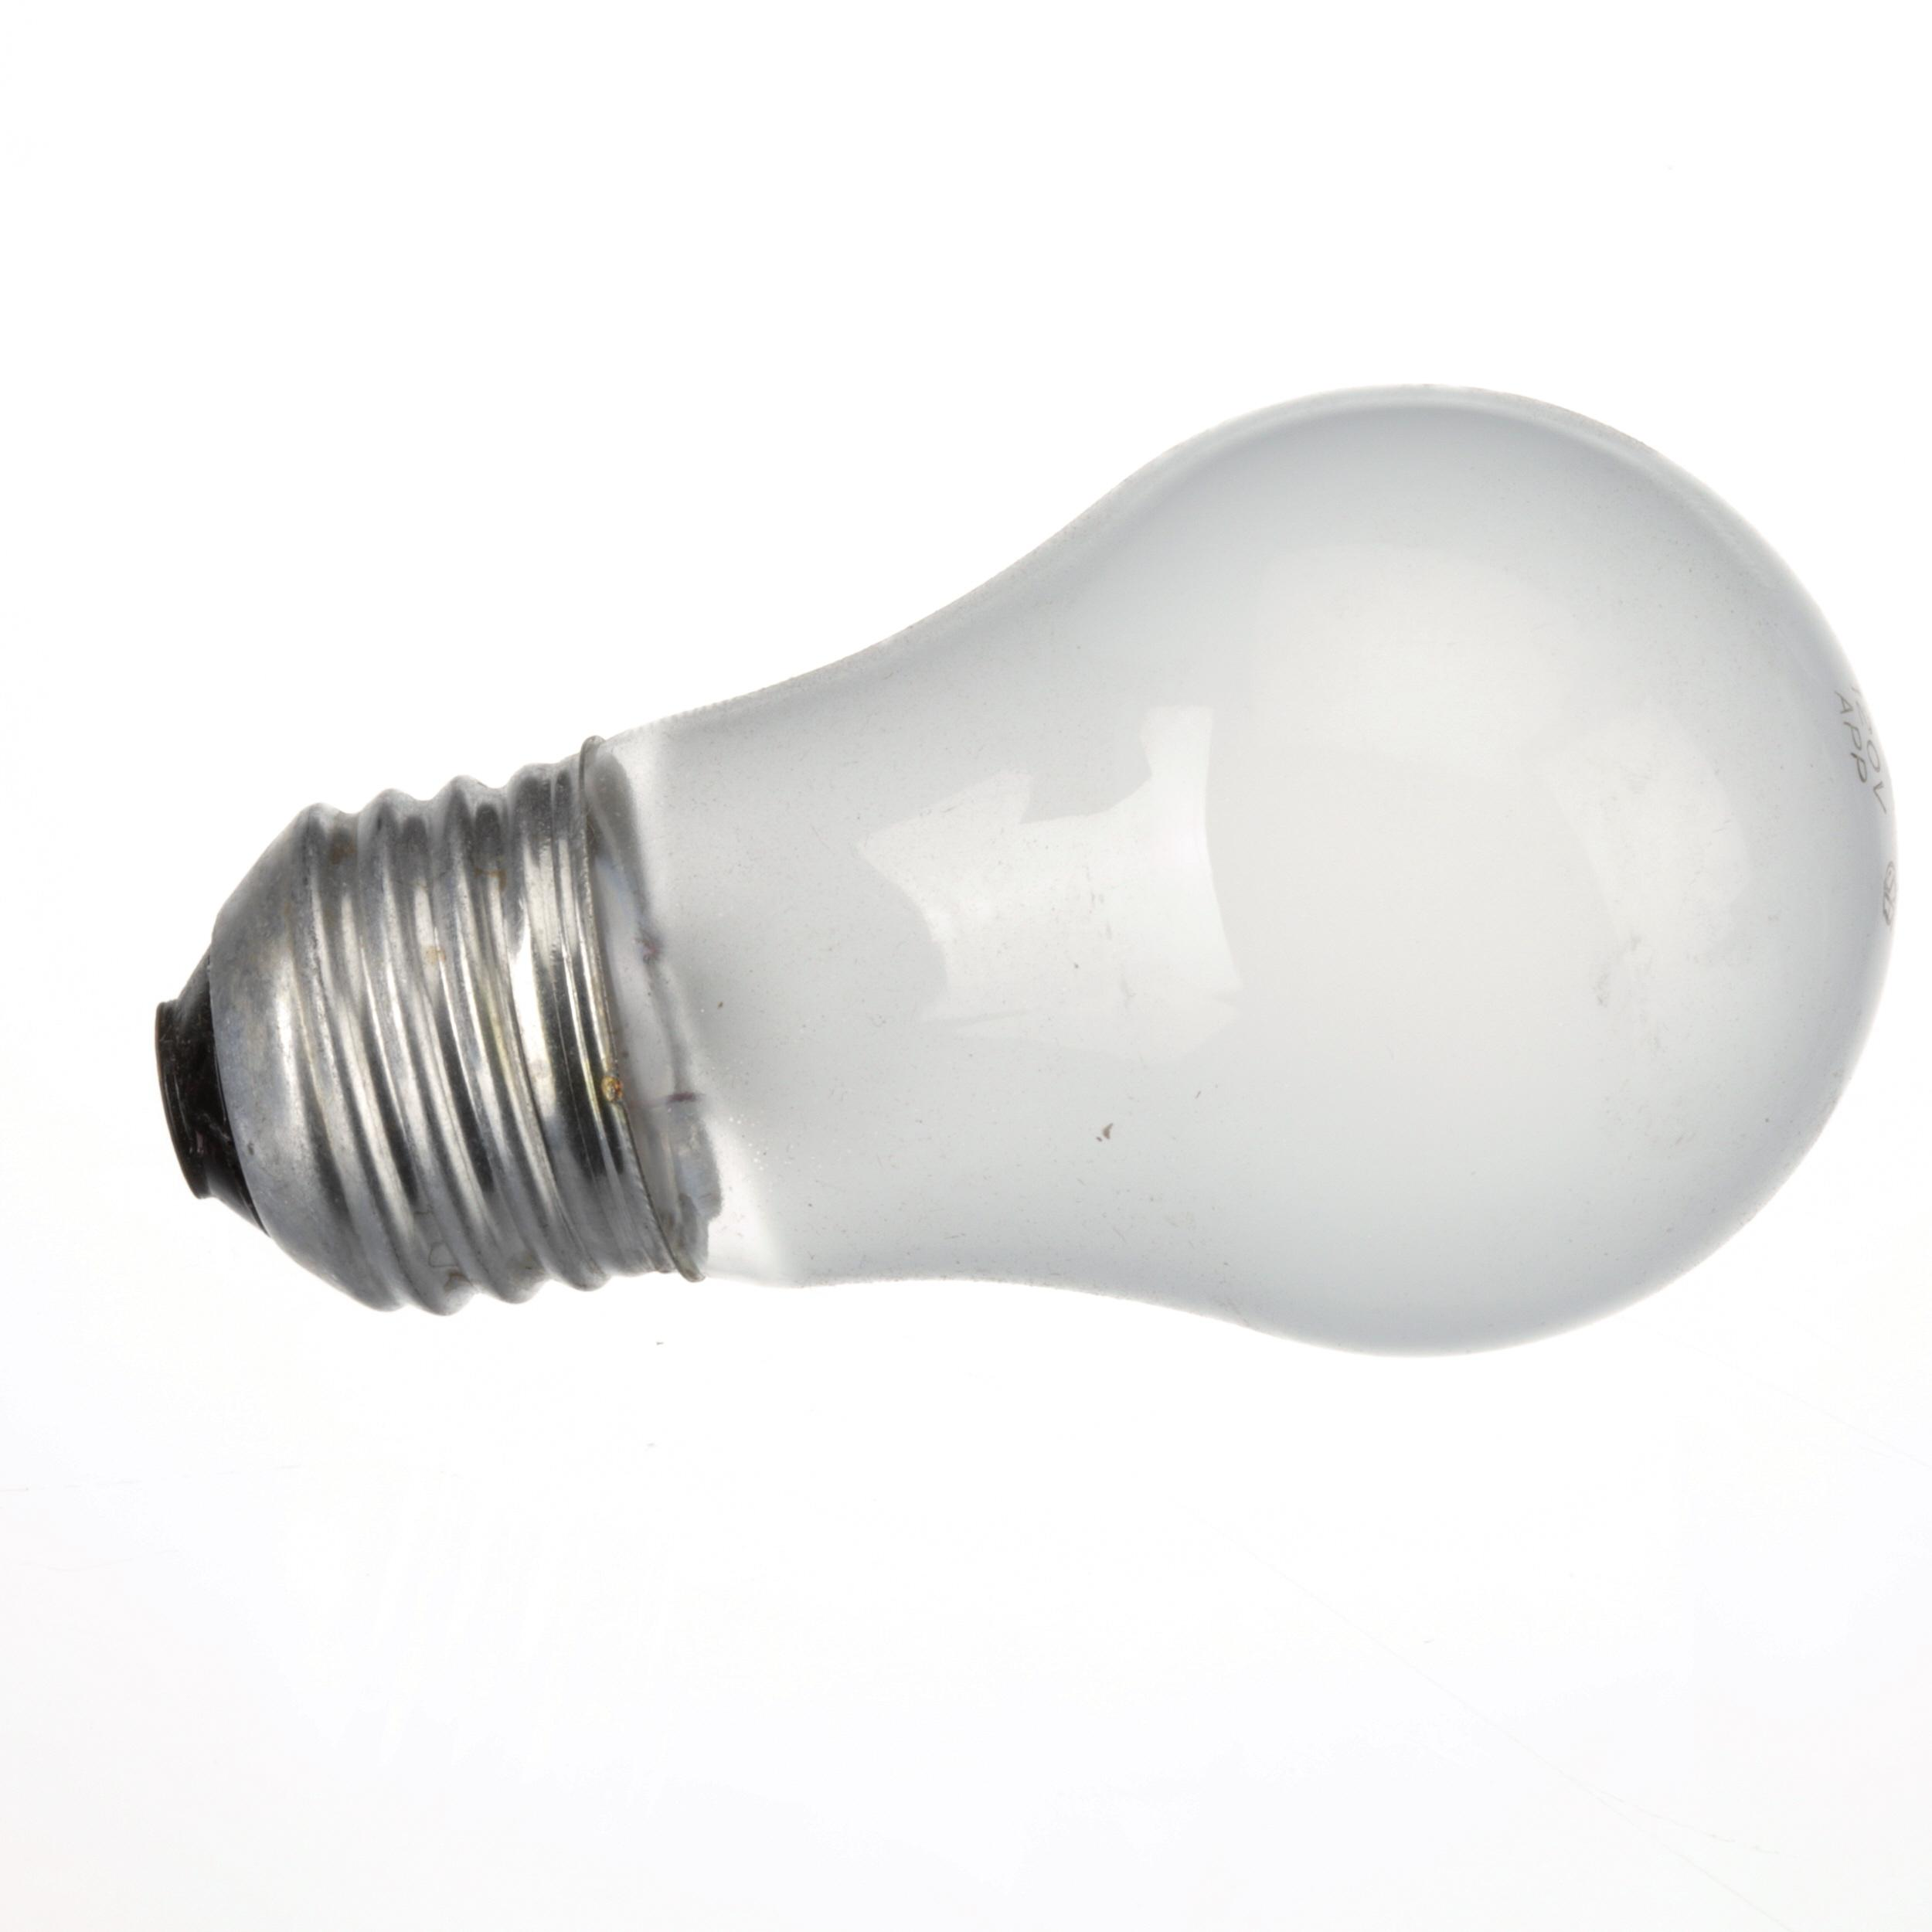 Garland Light Bulb 40w 120 Bx Part 1623900